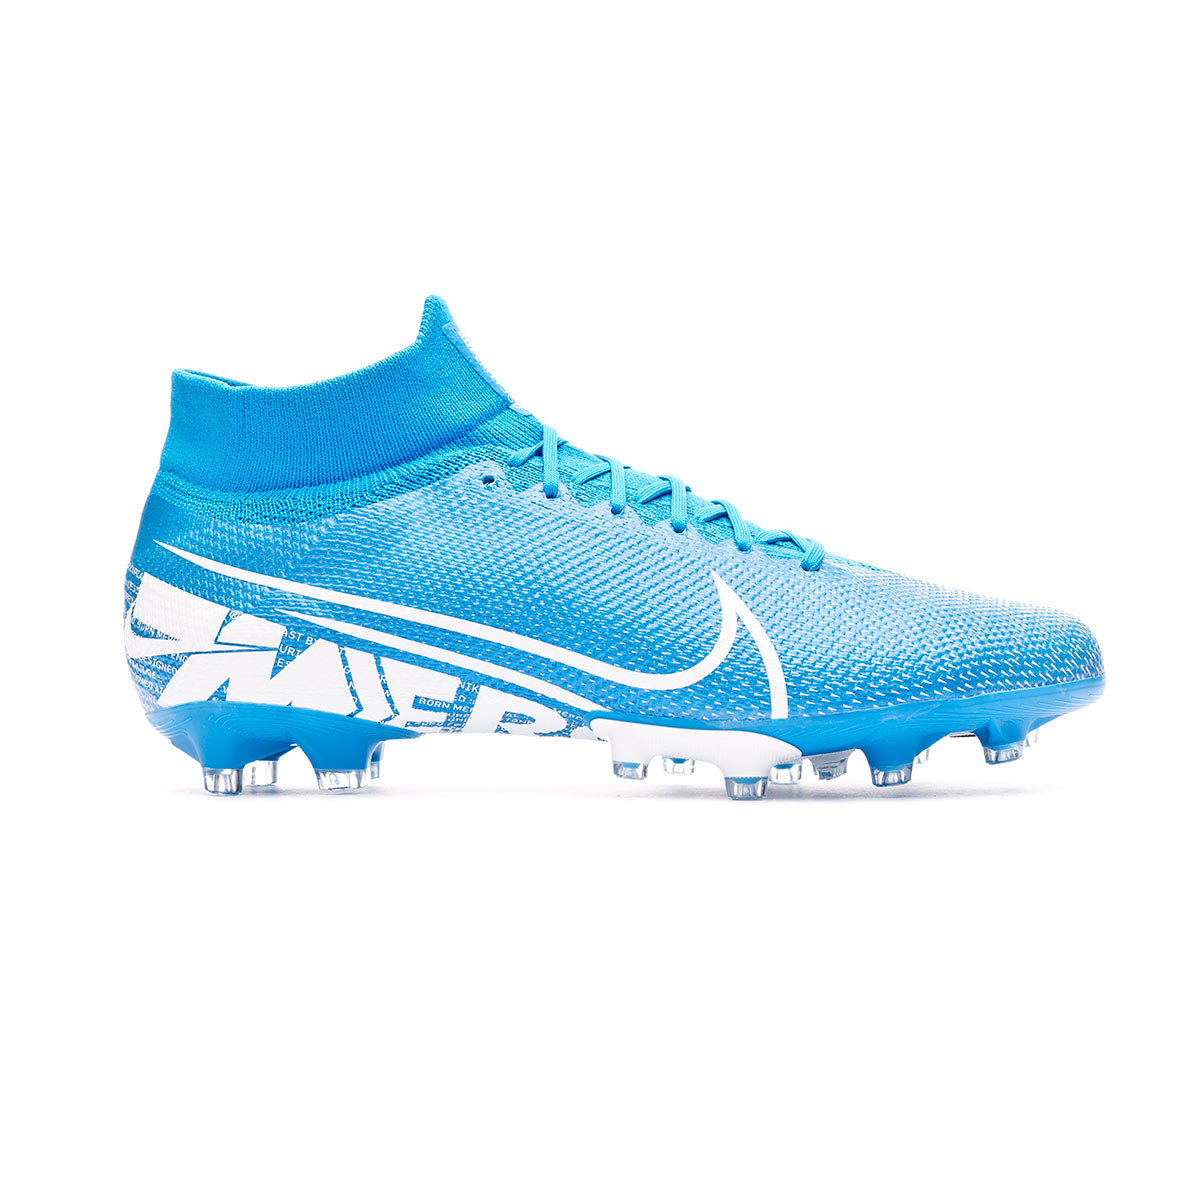 Folleto tirar a la basura Organizar  Football Boots Nike Mercurial Superfly VII Pro AG-Pro Blue  hero-White-Obsidian - Football store Fútbol Emotion